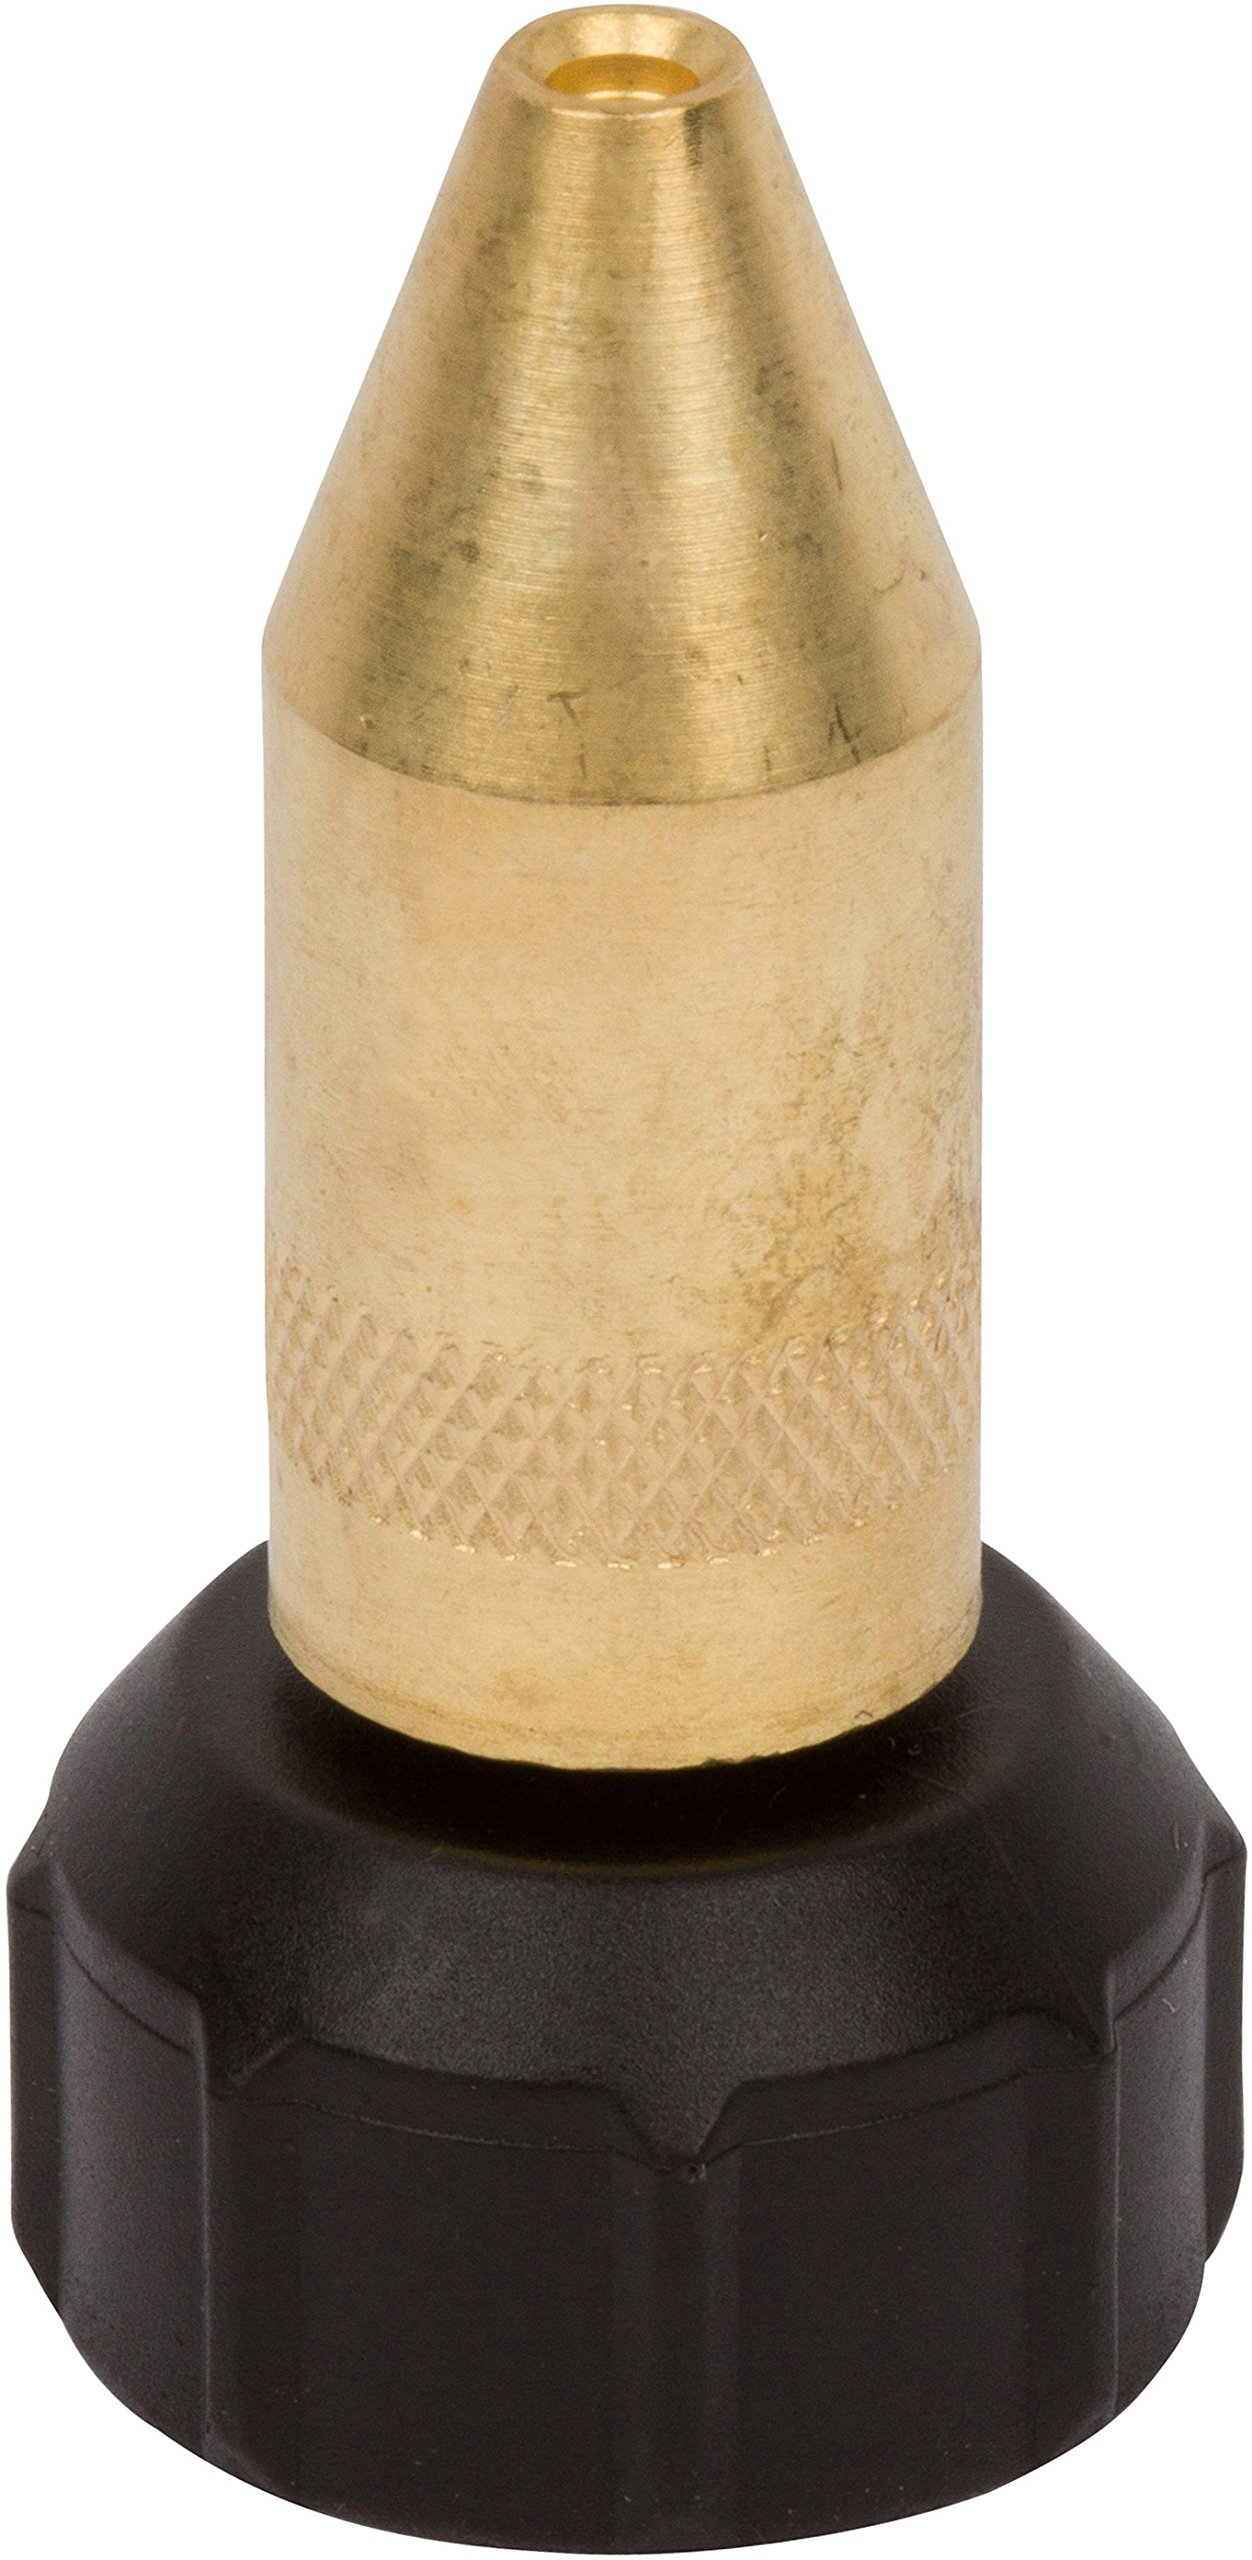 Roundup 181331 Brass Adjustable Nozzle